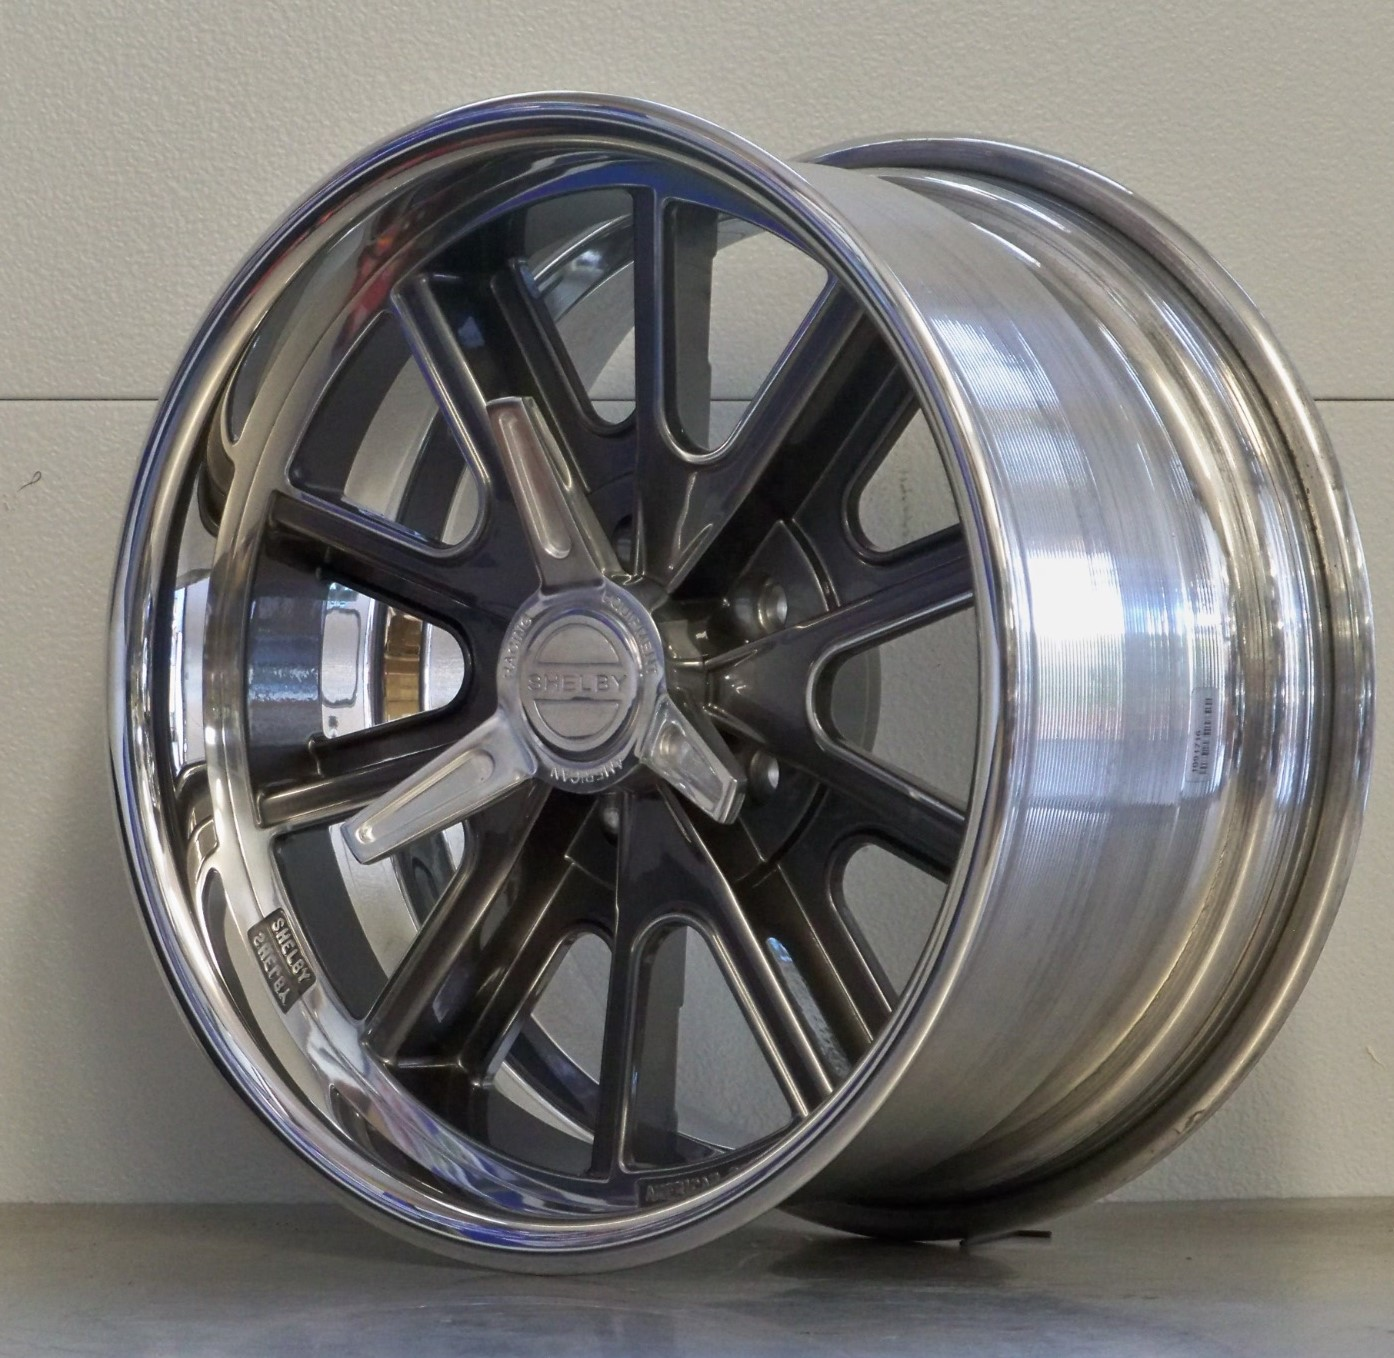 Pro Touring Muscle Car Vintage Wheels Mustang Hot Rod And Muscle Car